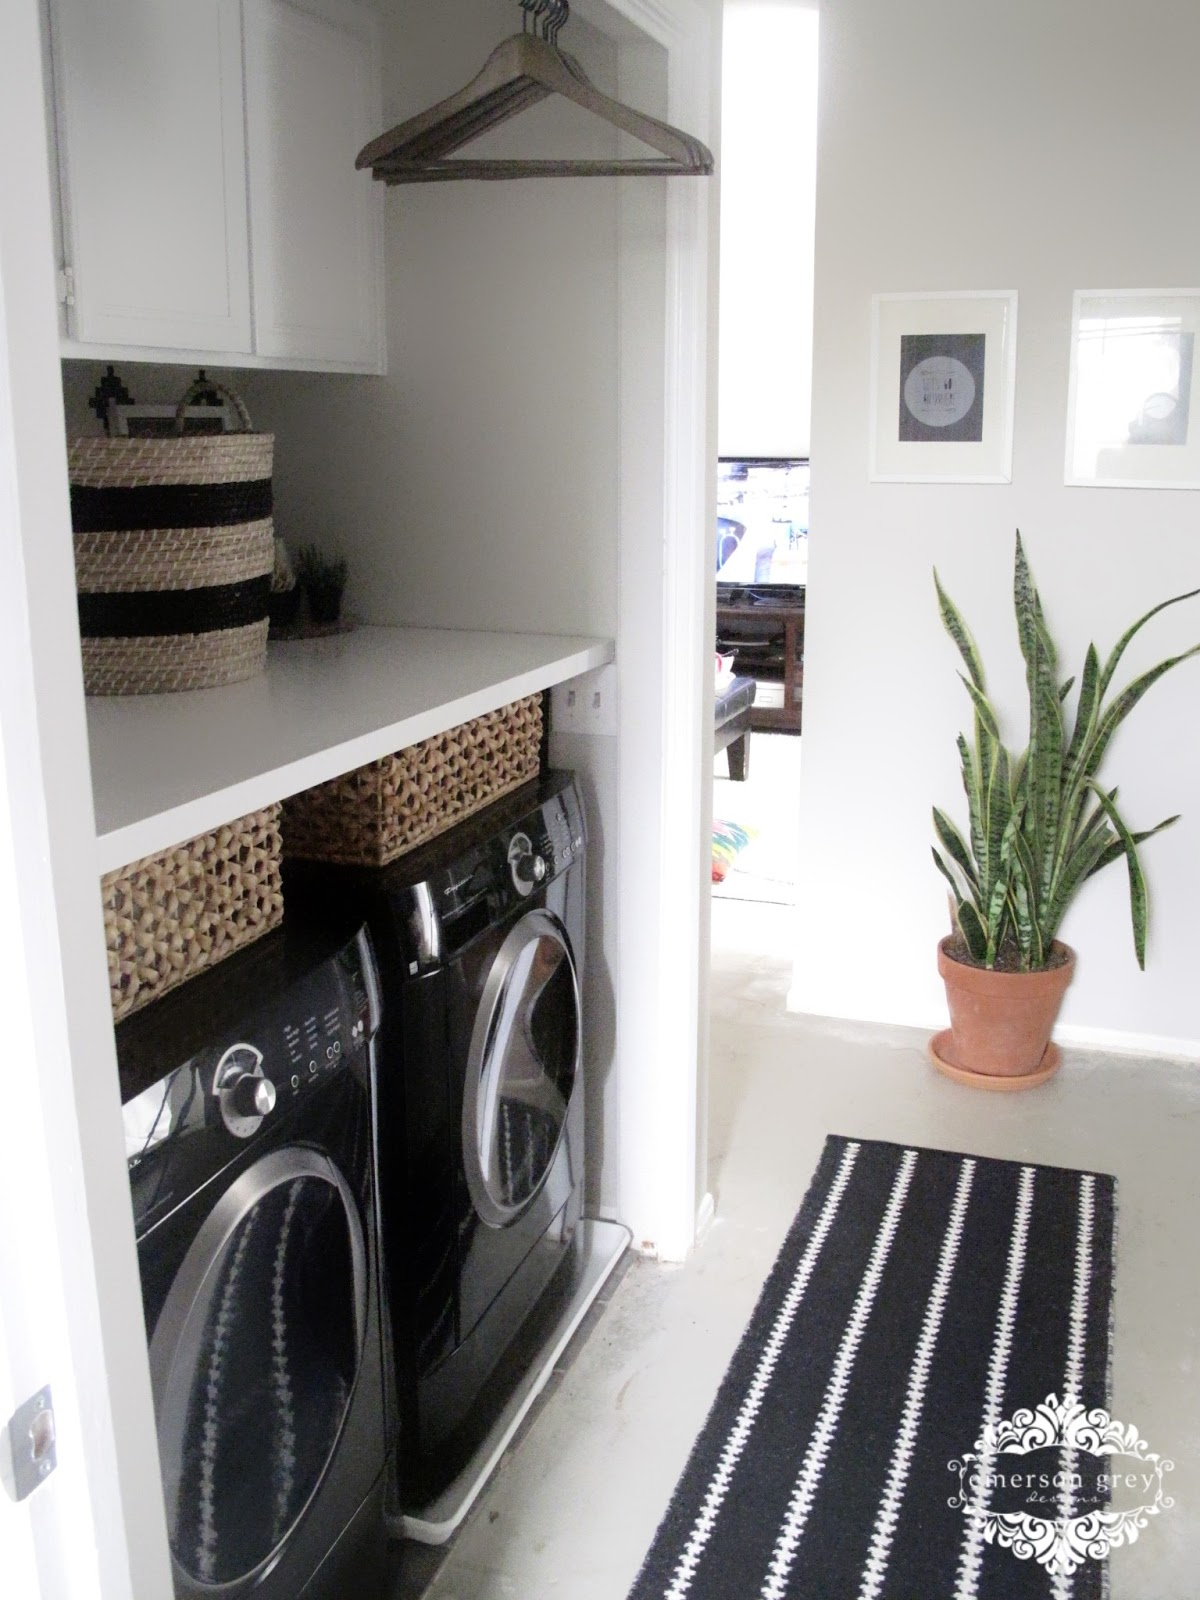 Laundry Room Home: Our New Home {part 6/ Laundry Room Redo}